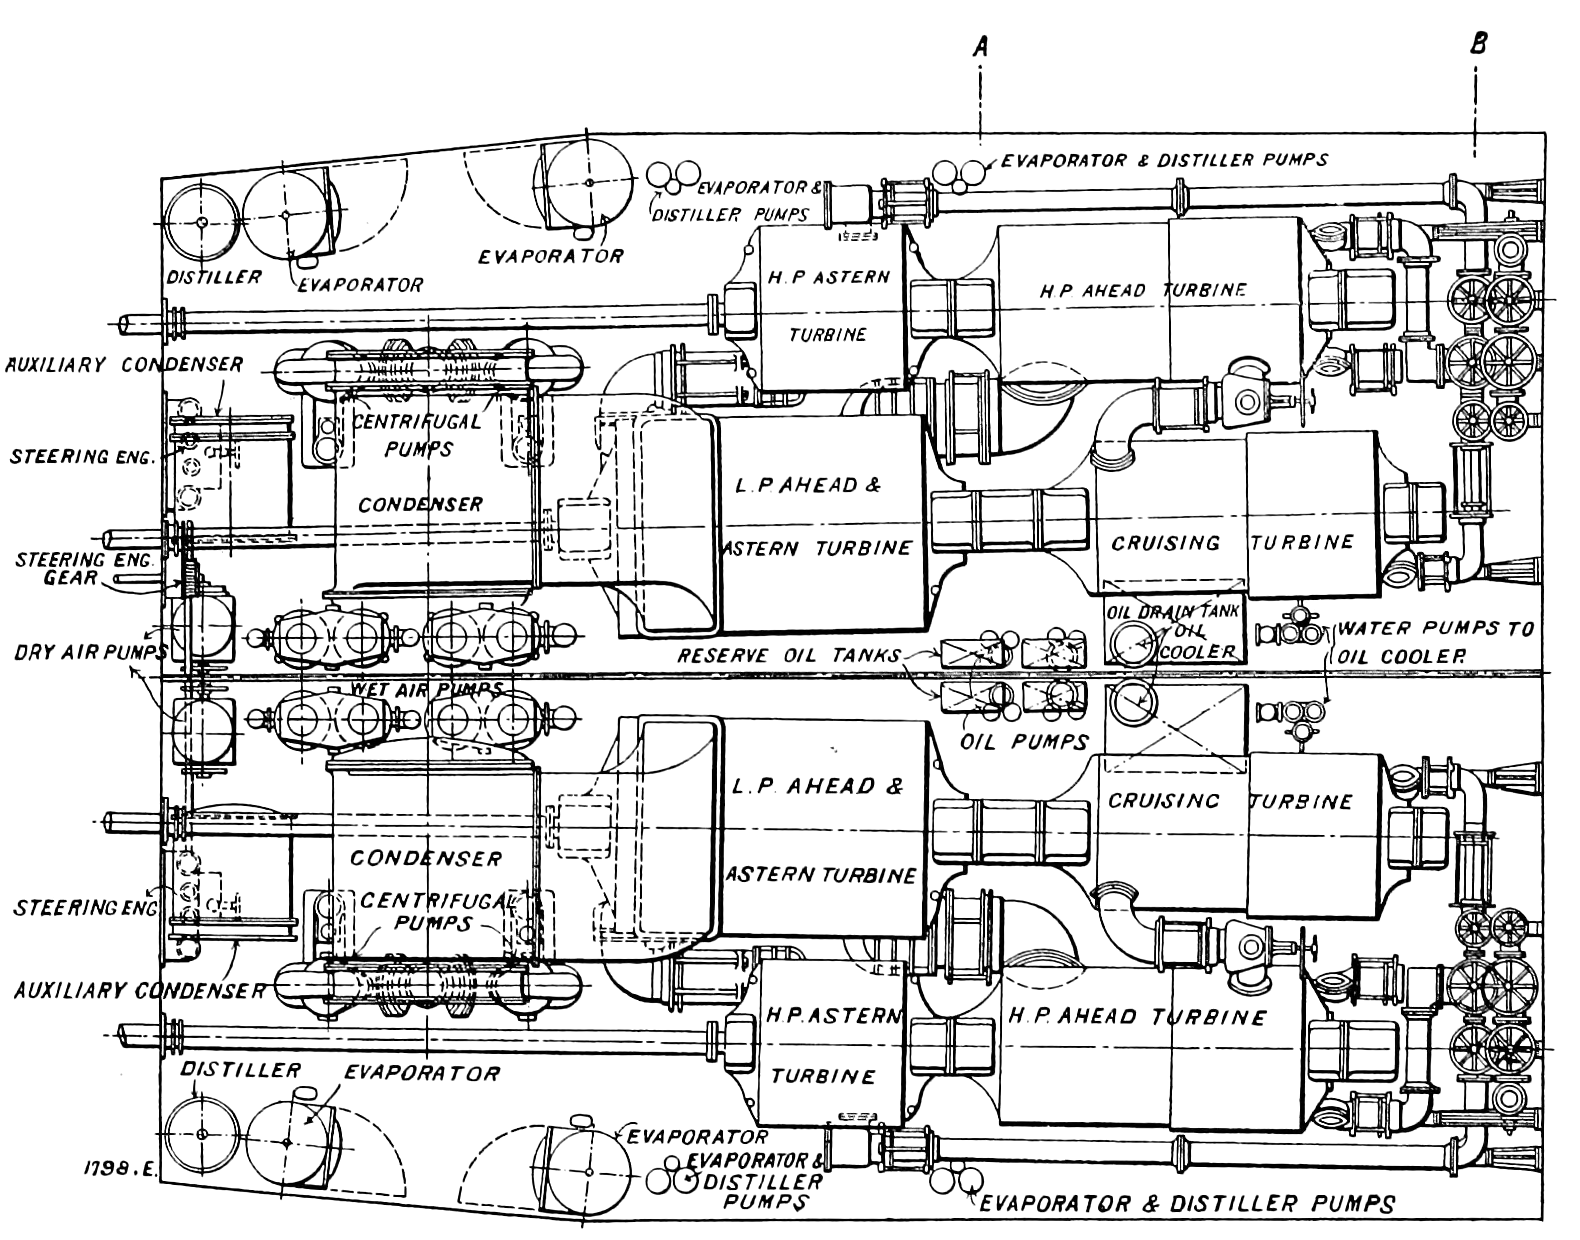 File The Steam Turbine 1911 Fig 32 Turbines in Series for